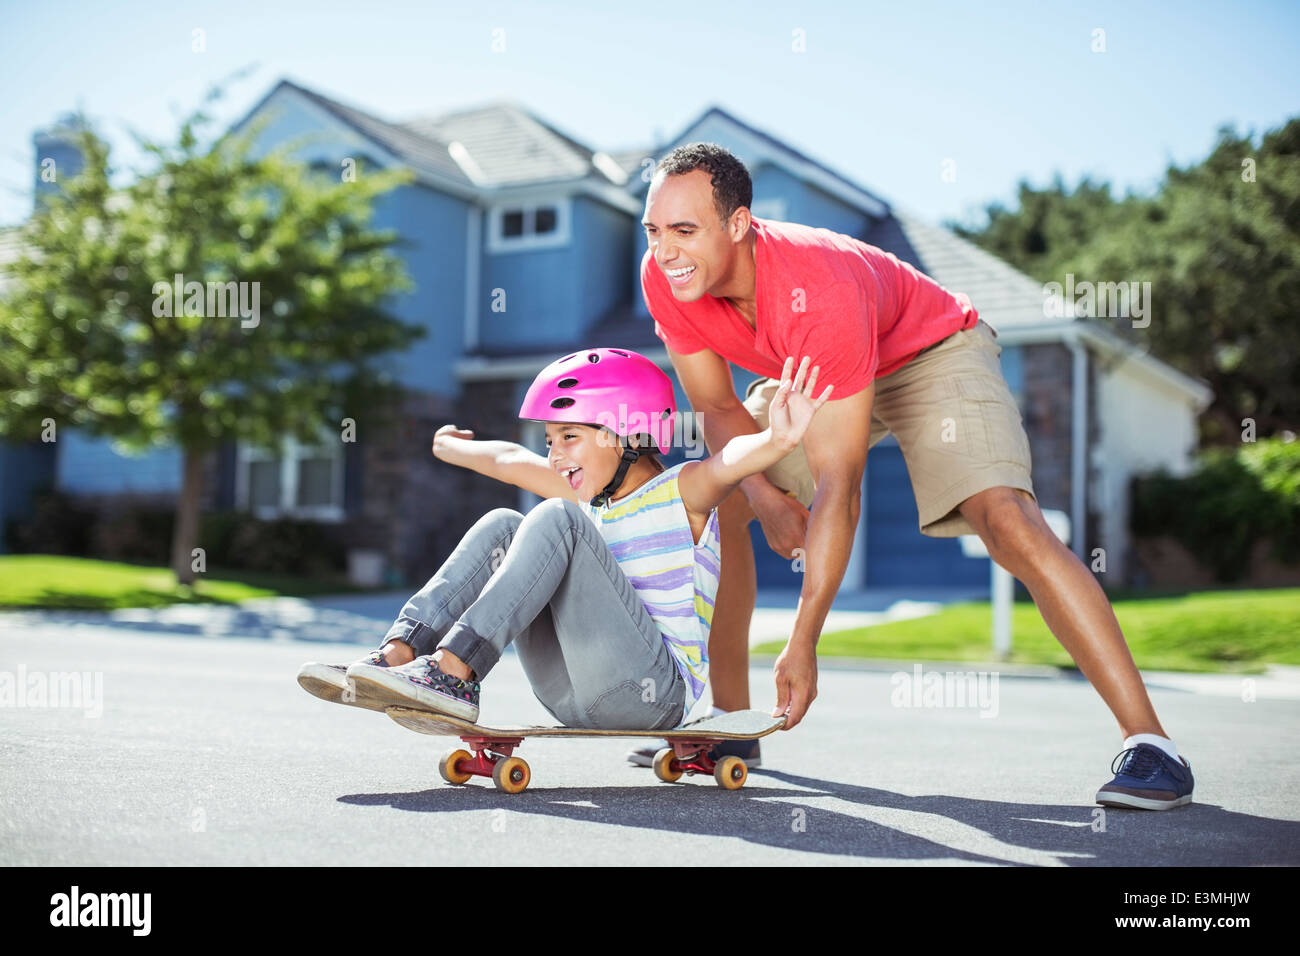 Father pushing daughter on skateboard - Stock Image